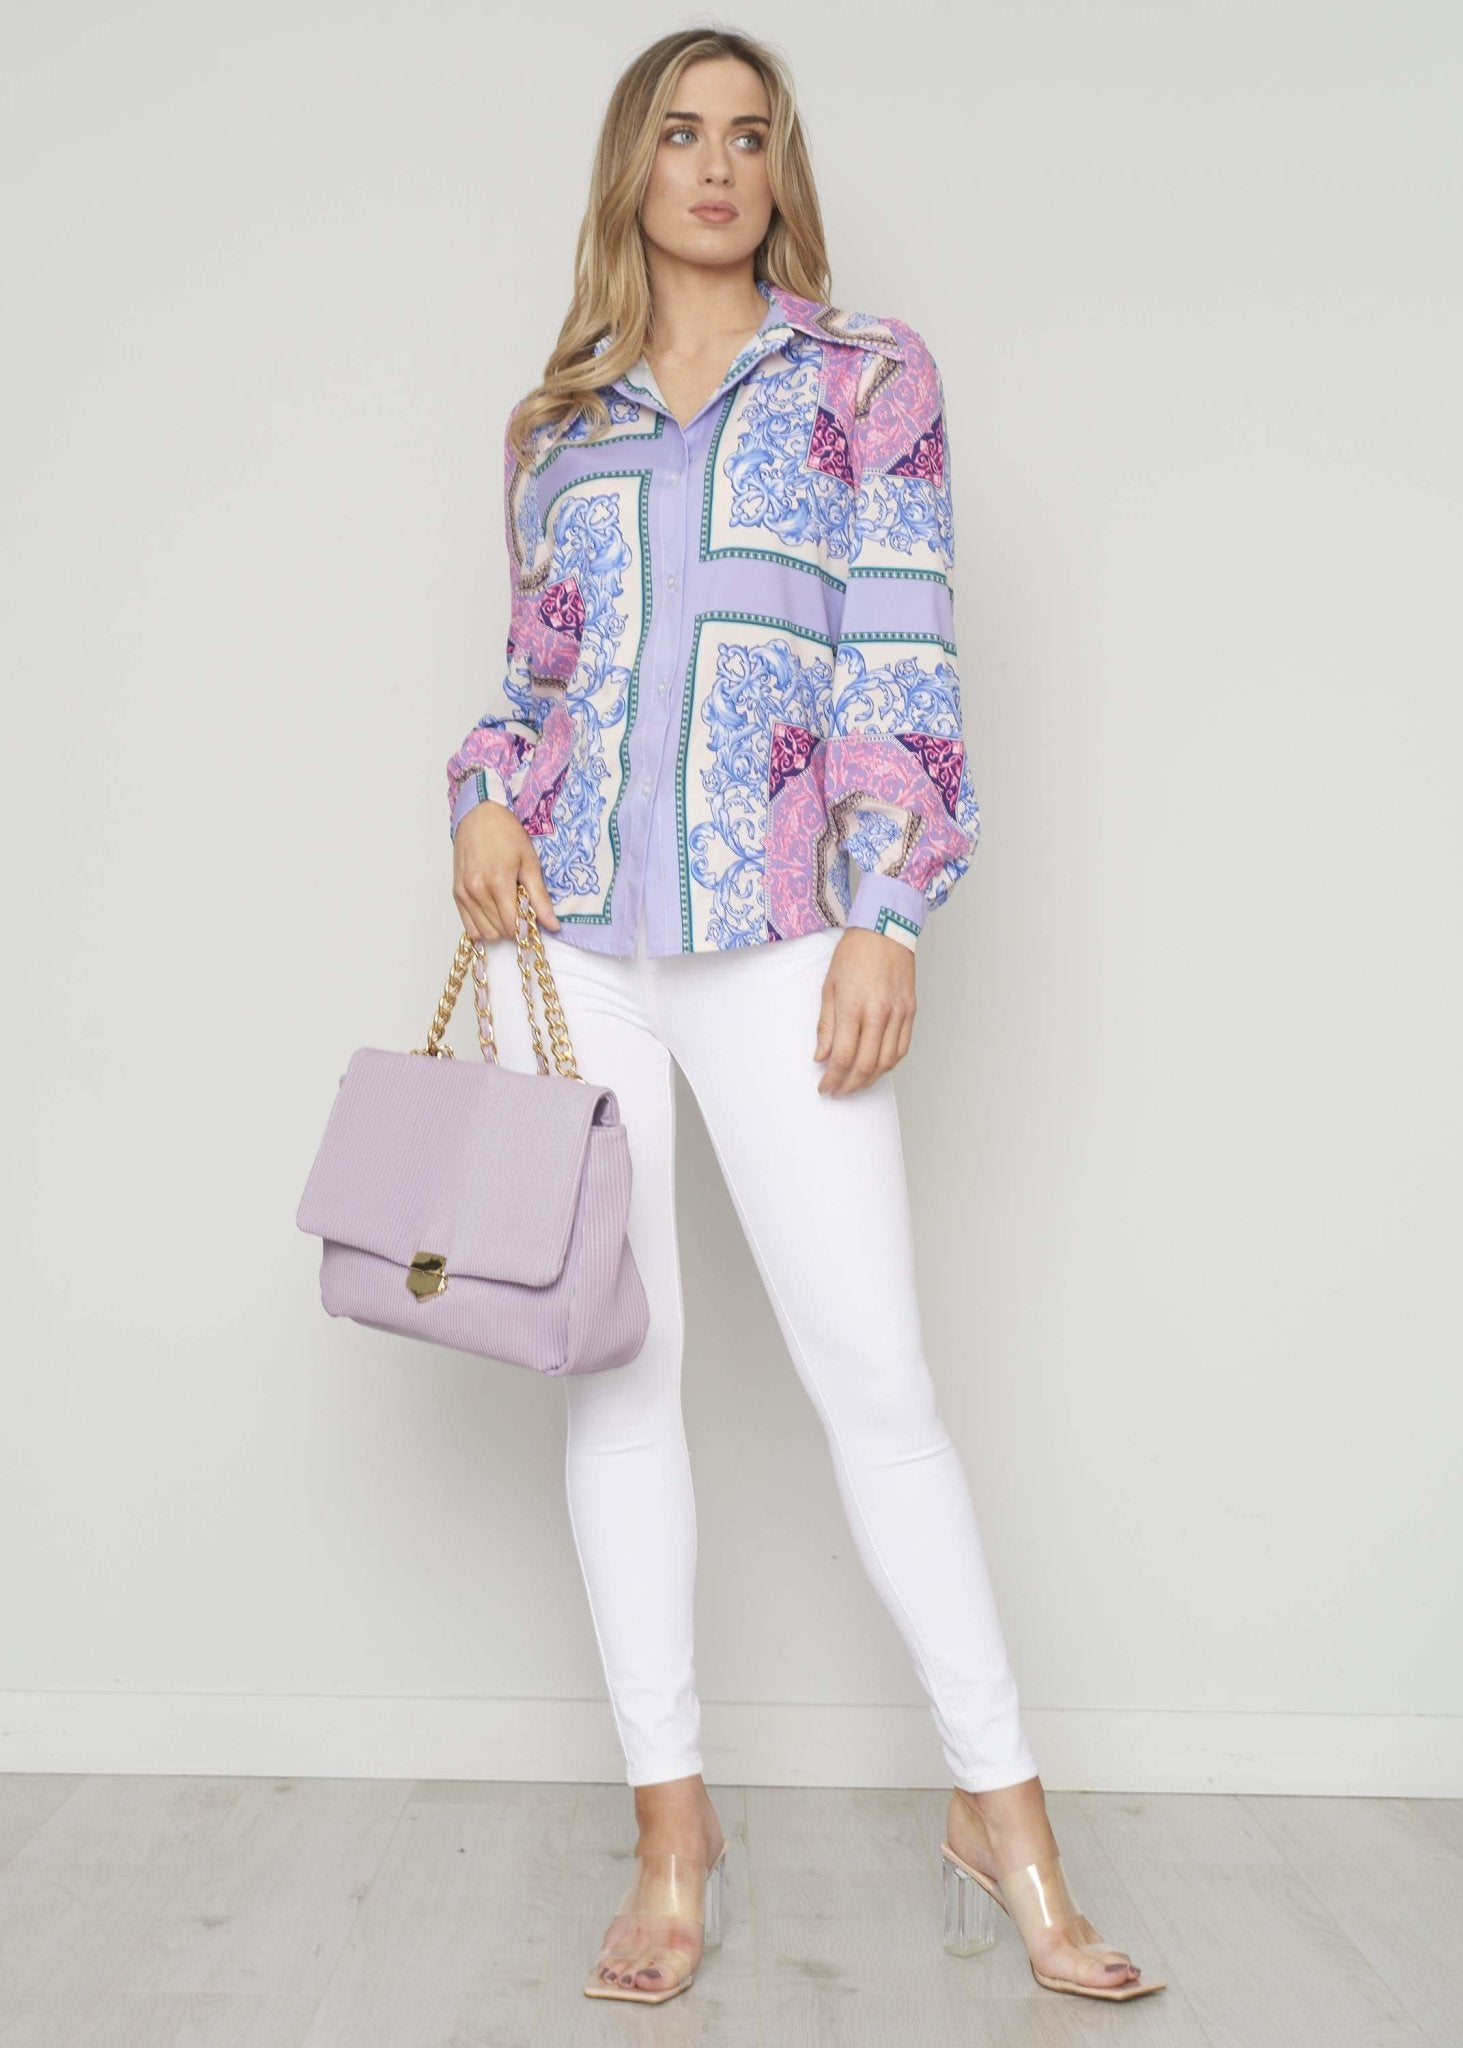 Indie Printed Shirt In Lilac Mix - The Walk in Wardrobe